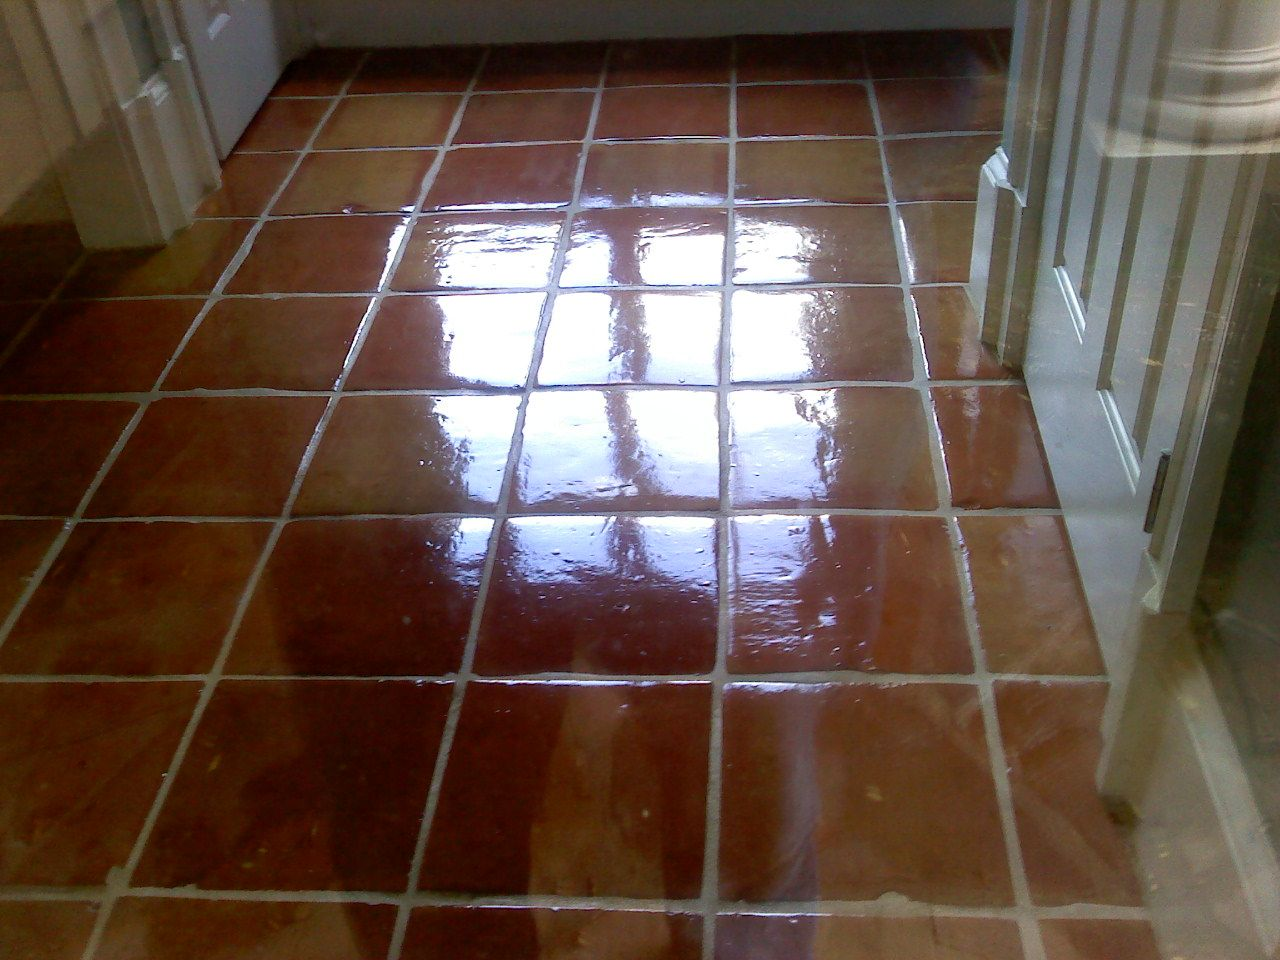 Saltillo restoration looks like mexican tile walk this way saltillo restoration looks like mexican tile dailygadgetfo Image collections